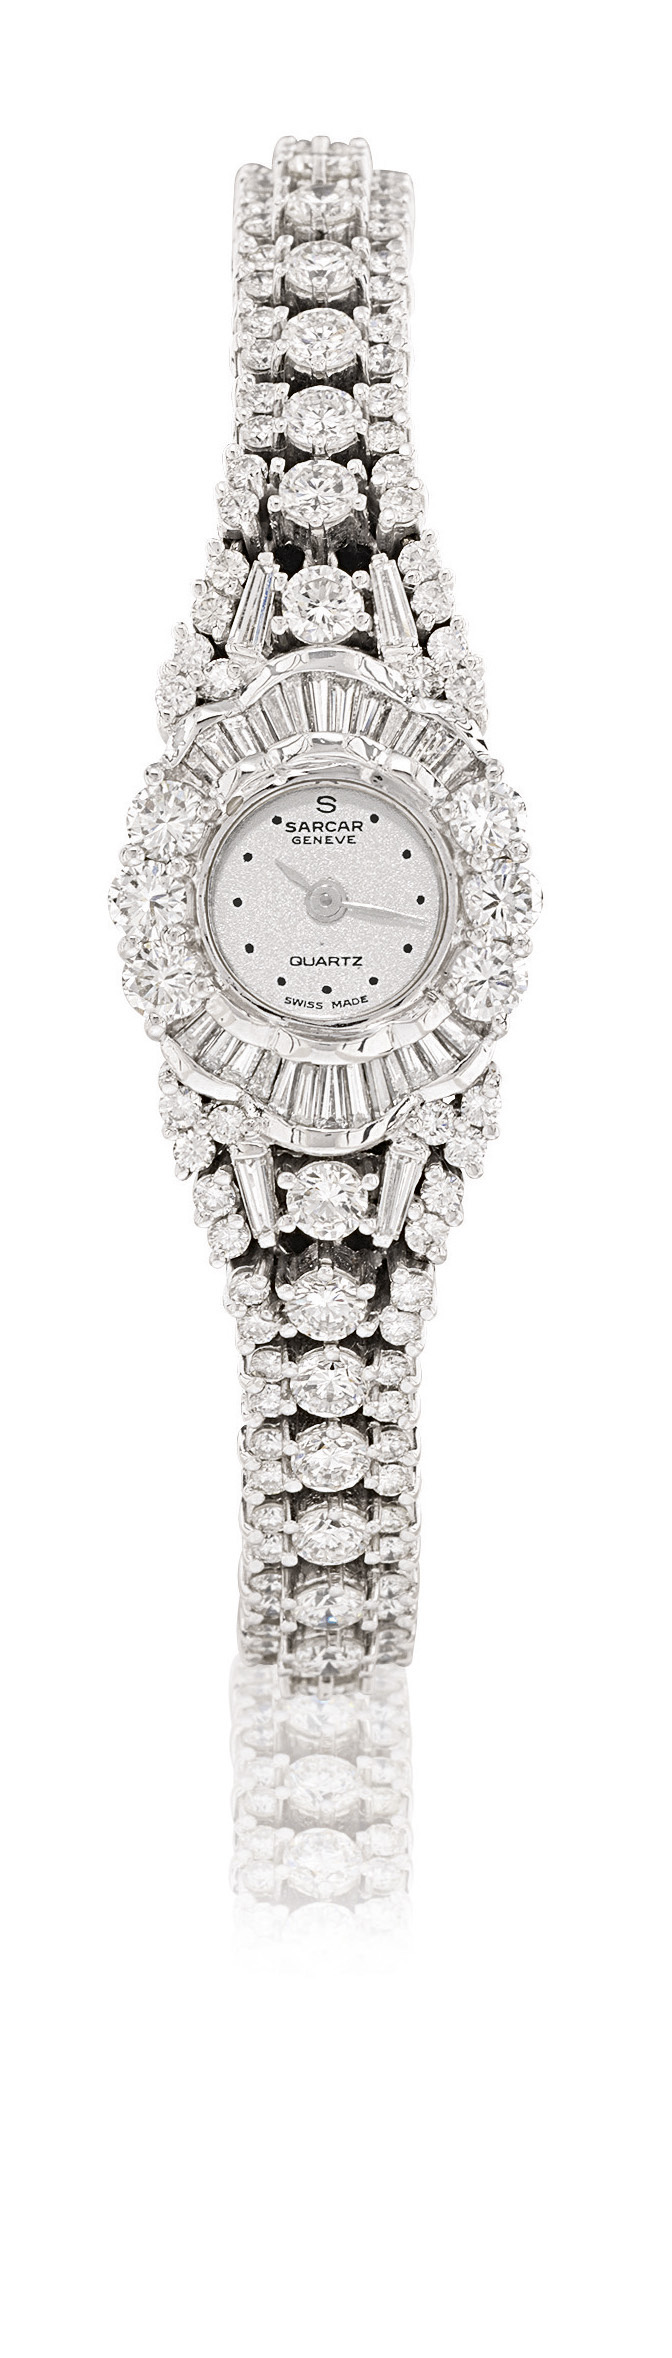 SARCAR  LADY'S WHITE GOLD AND DIAMOND-SET QUARTZ BRACELET WATCH